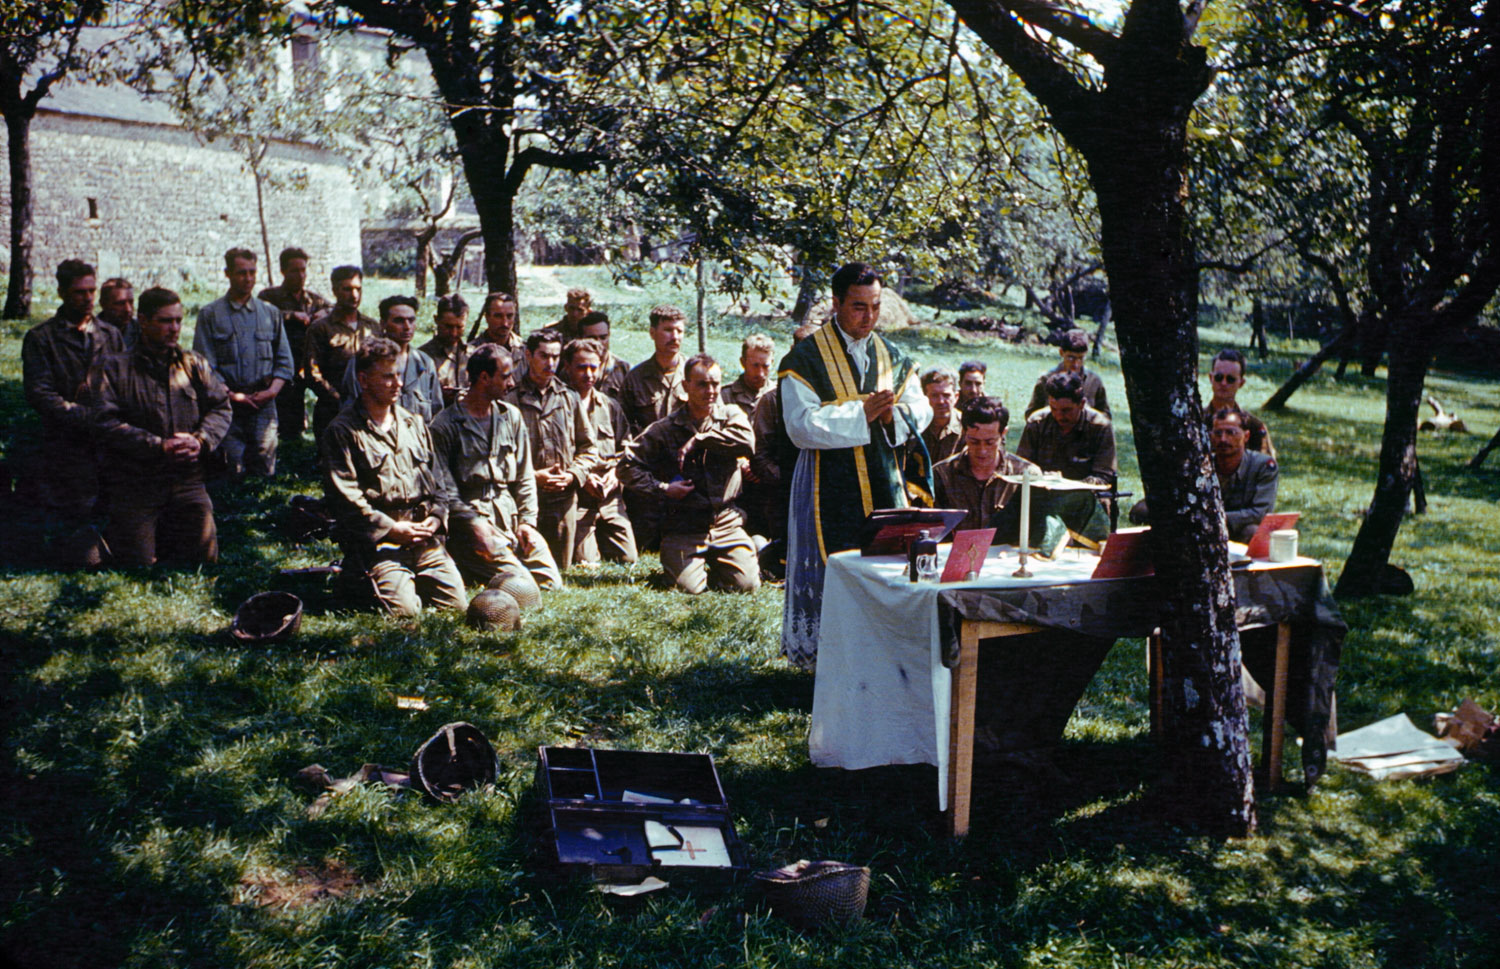 Church services in dappled sunlight, France, 1944.